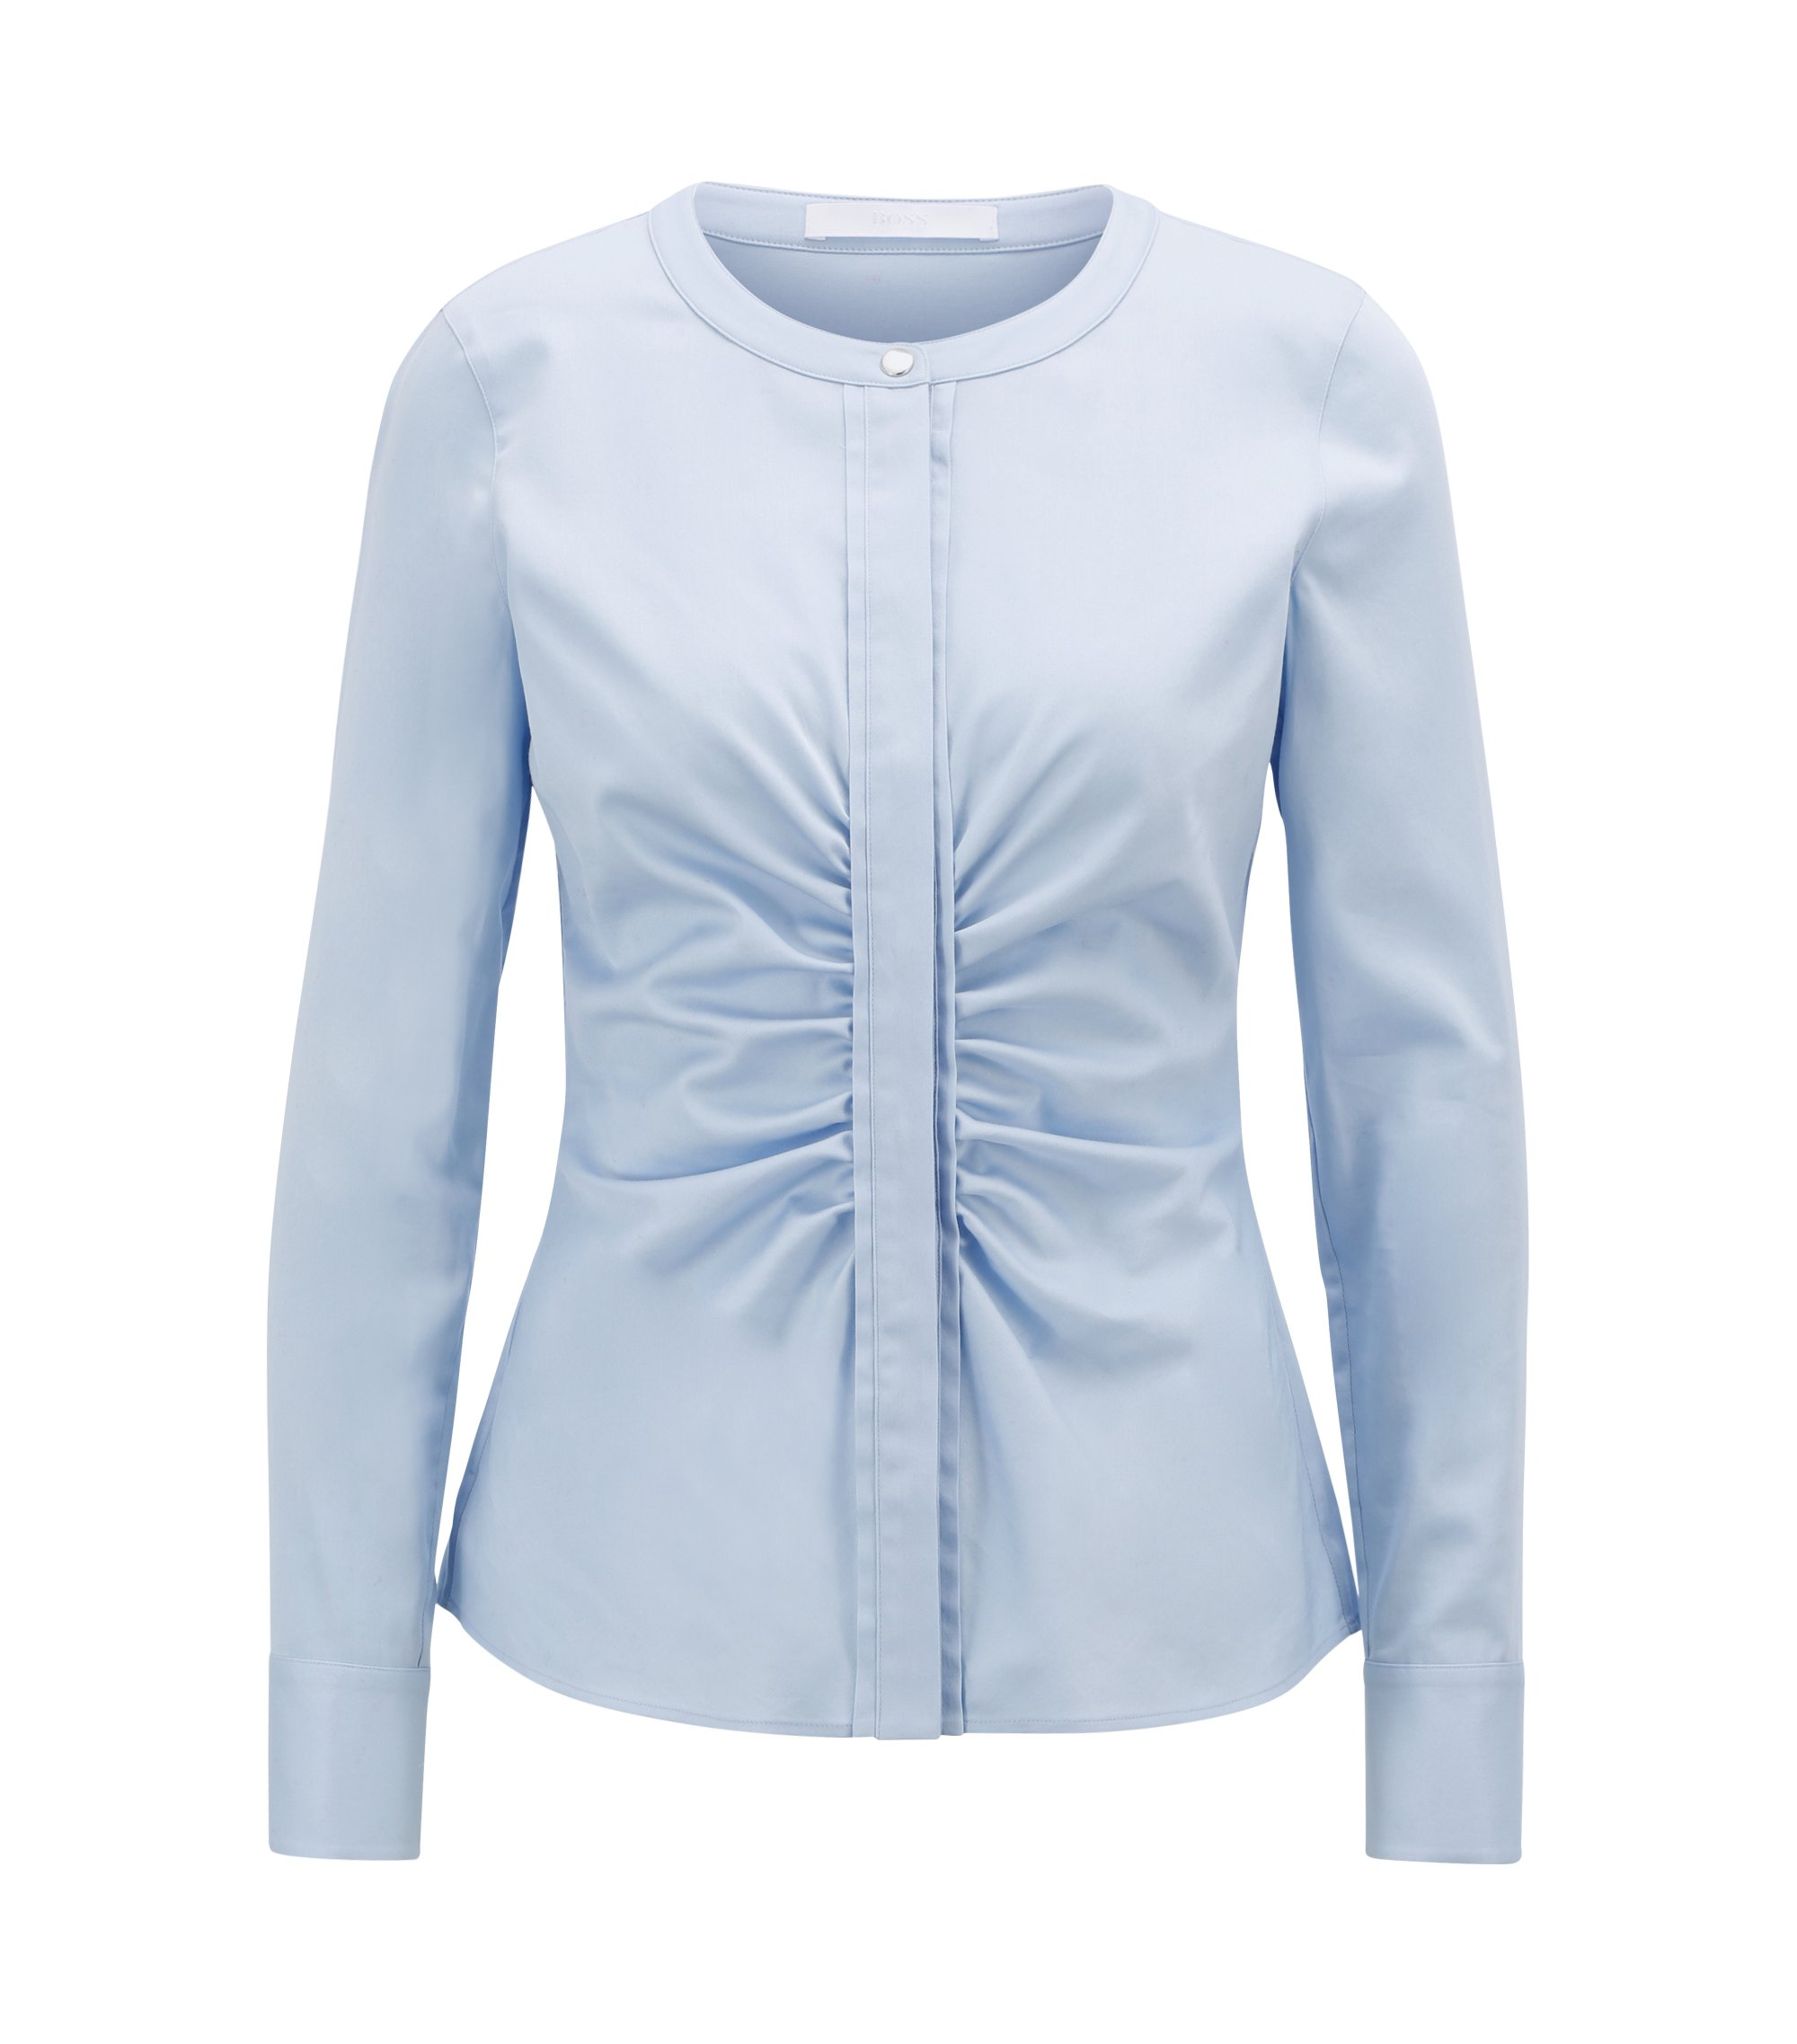 Collarless blouse in stretch satin with ruching detail, Light Blue